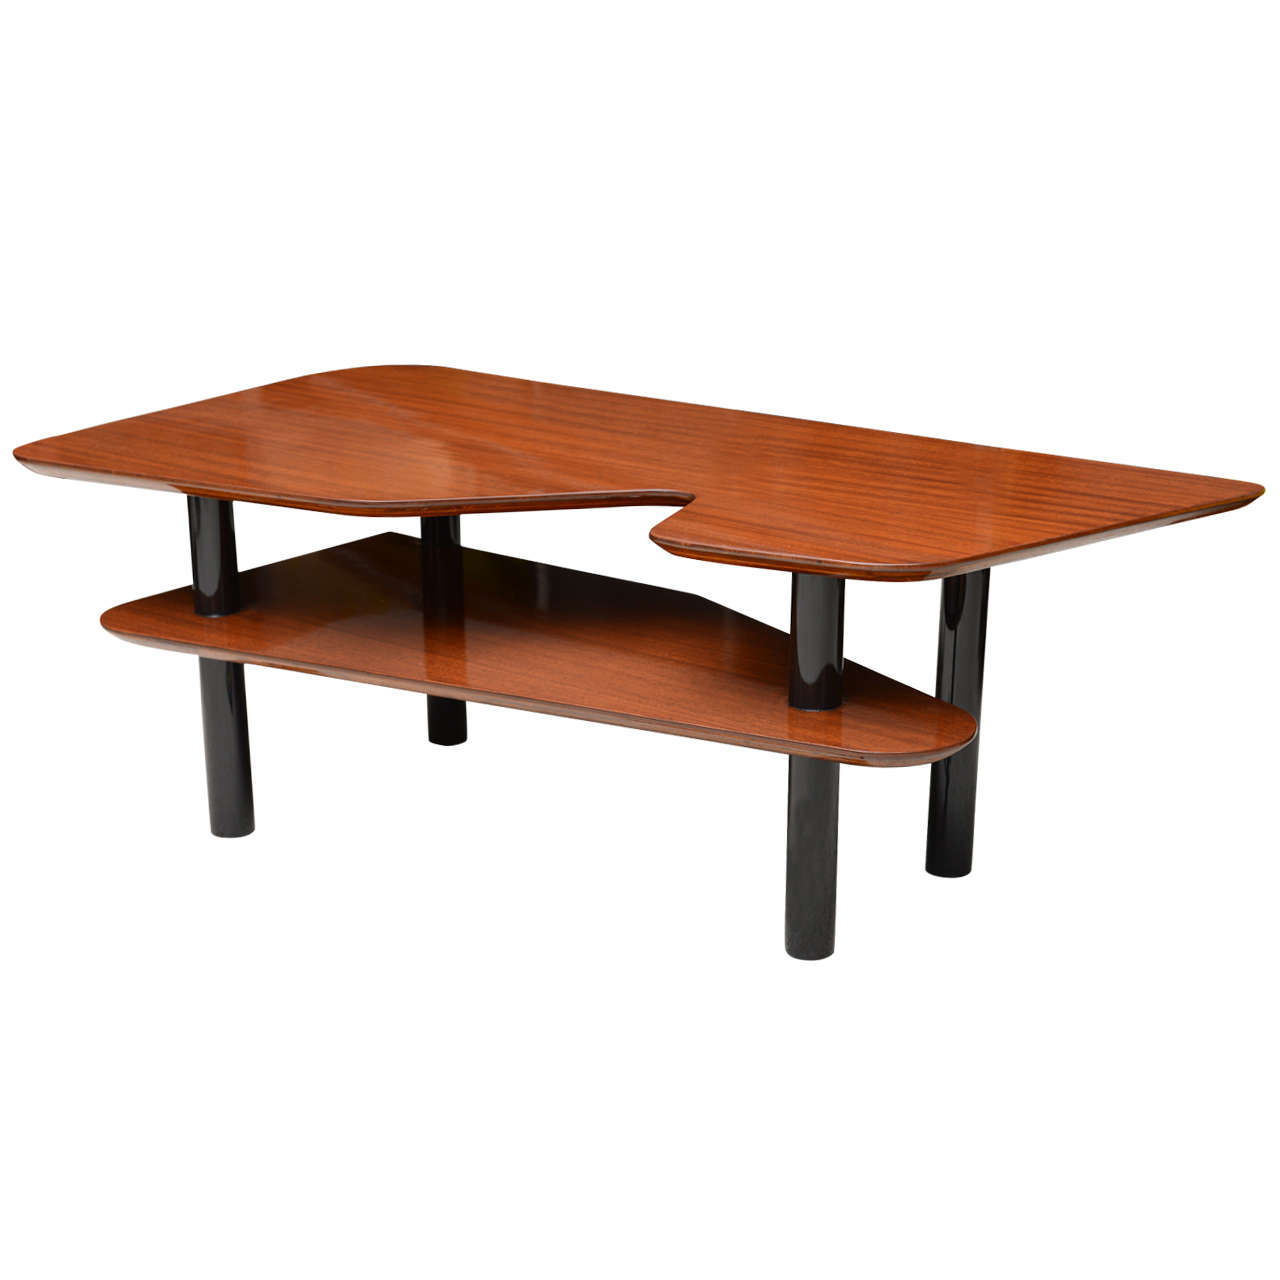 Italian Modern Mahogany And Ebonised Low Table Style Of Ponti For Sale At 1stdibs